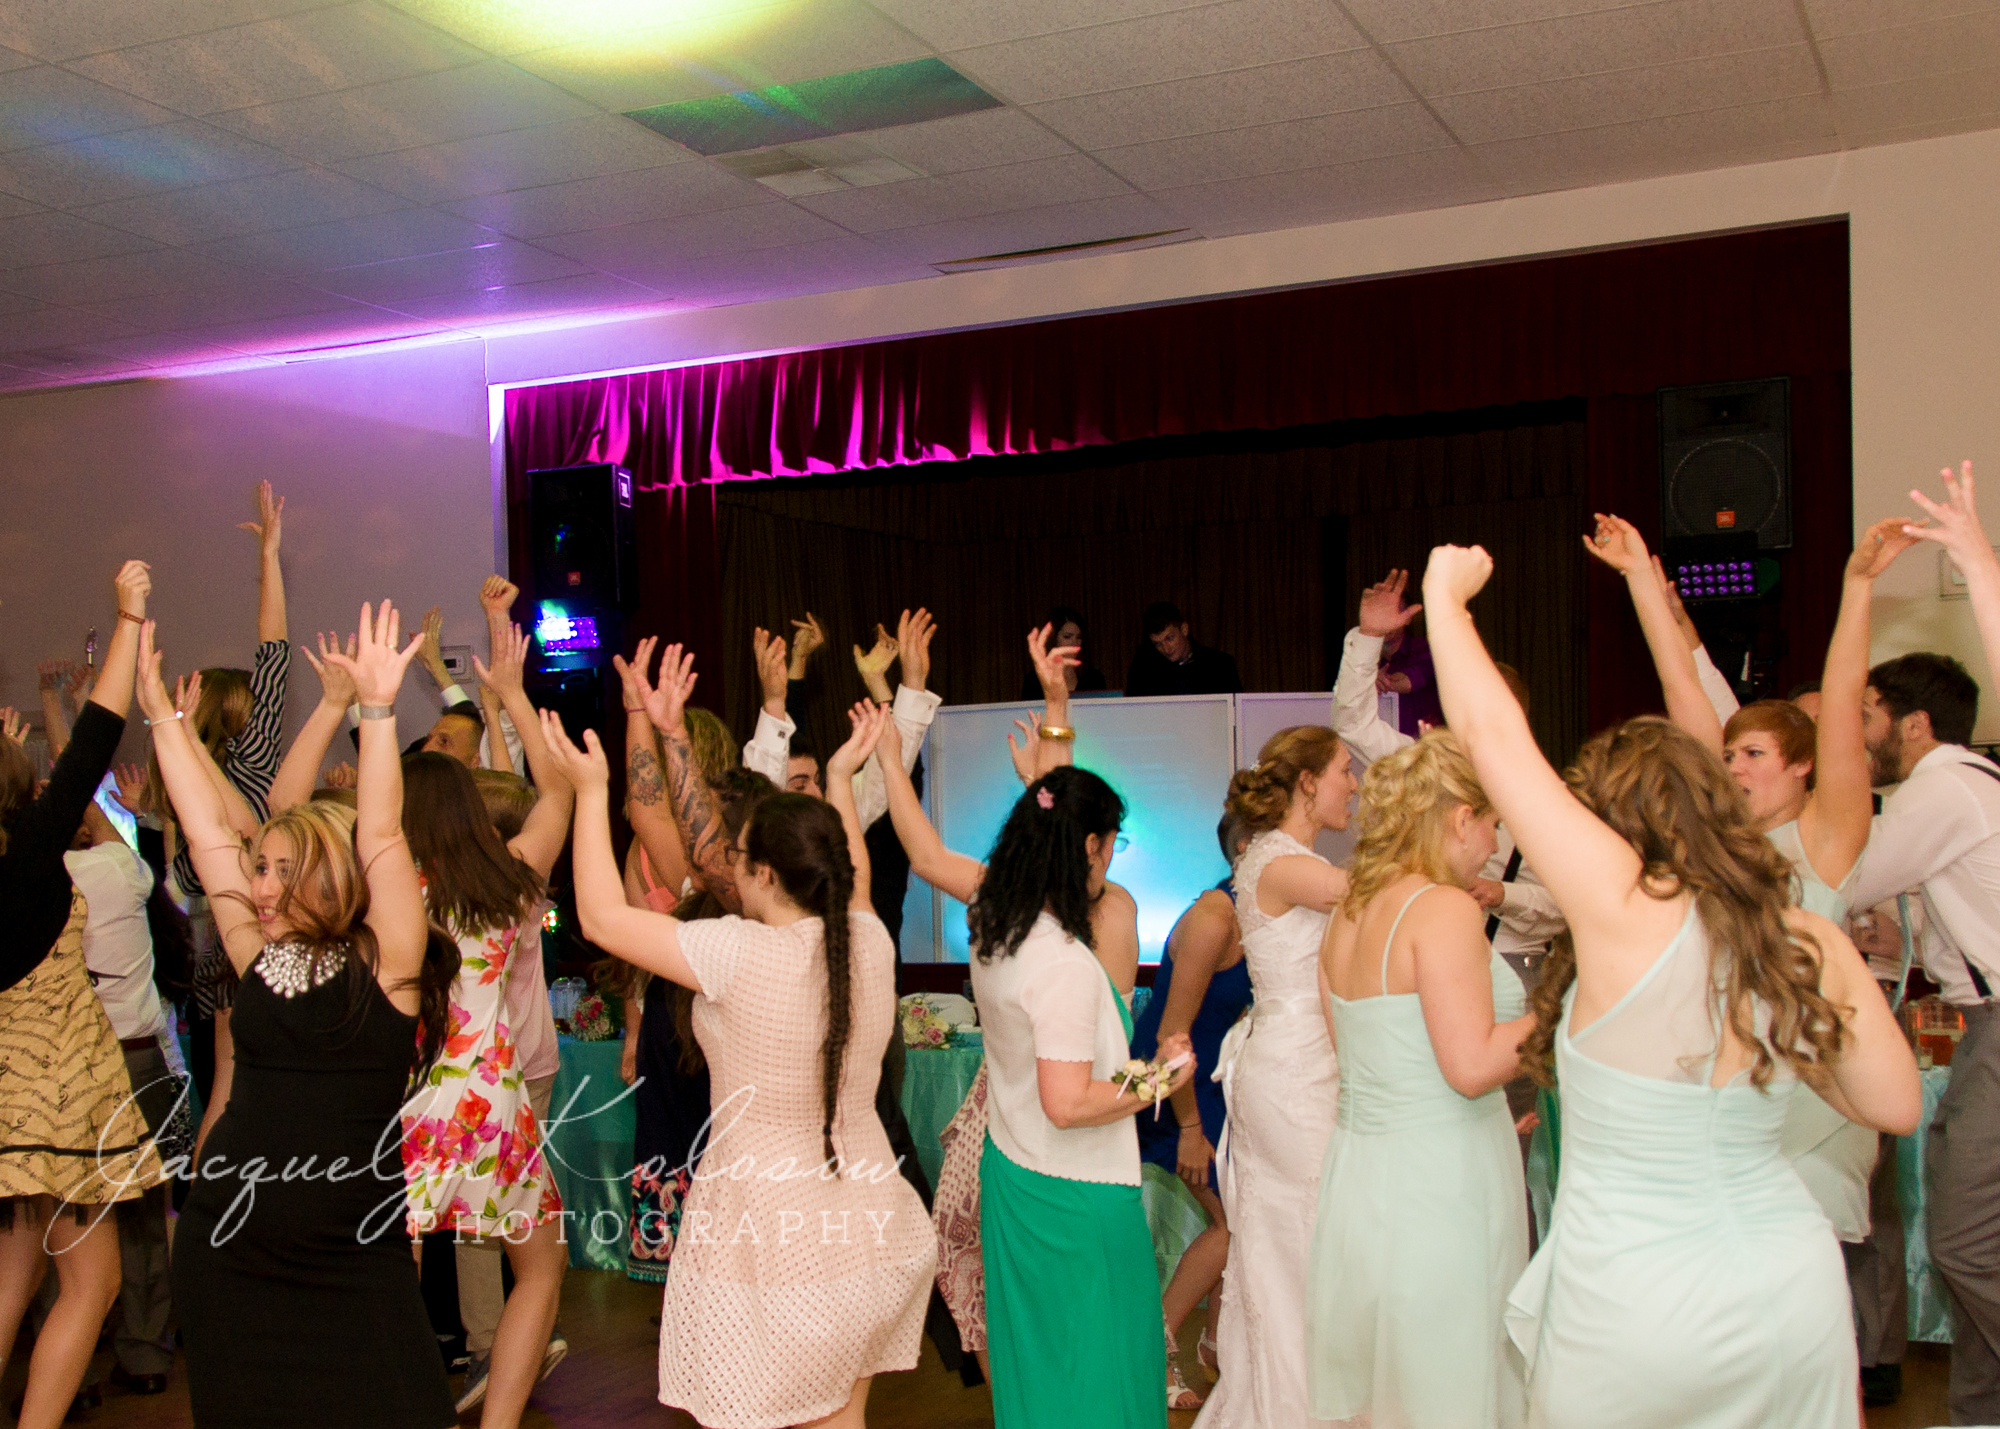 Hands up! Our wedding DJs pack floor